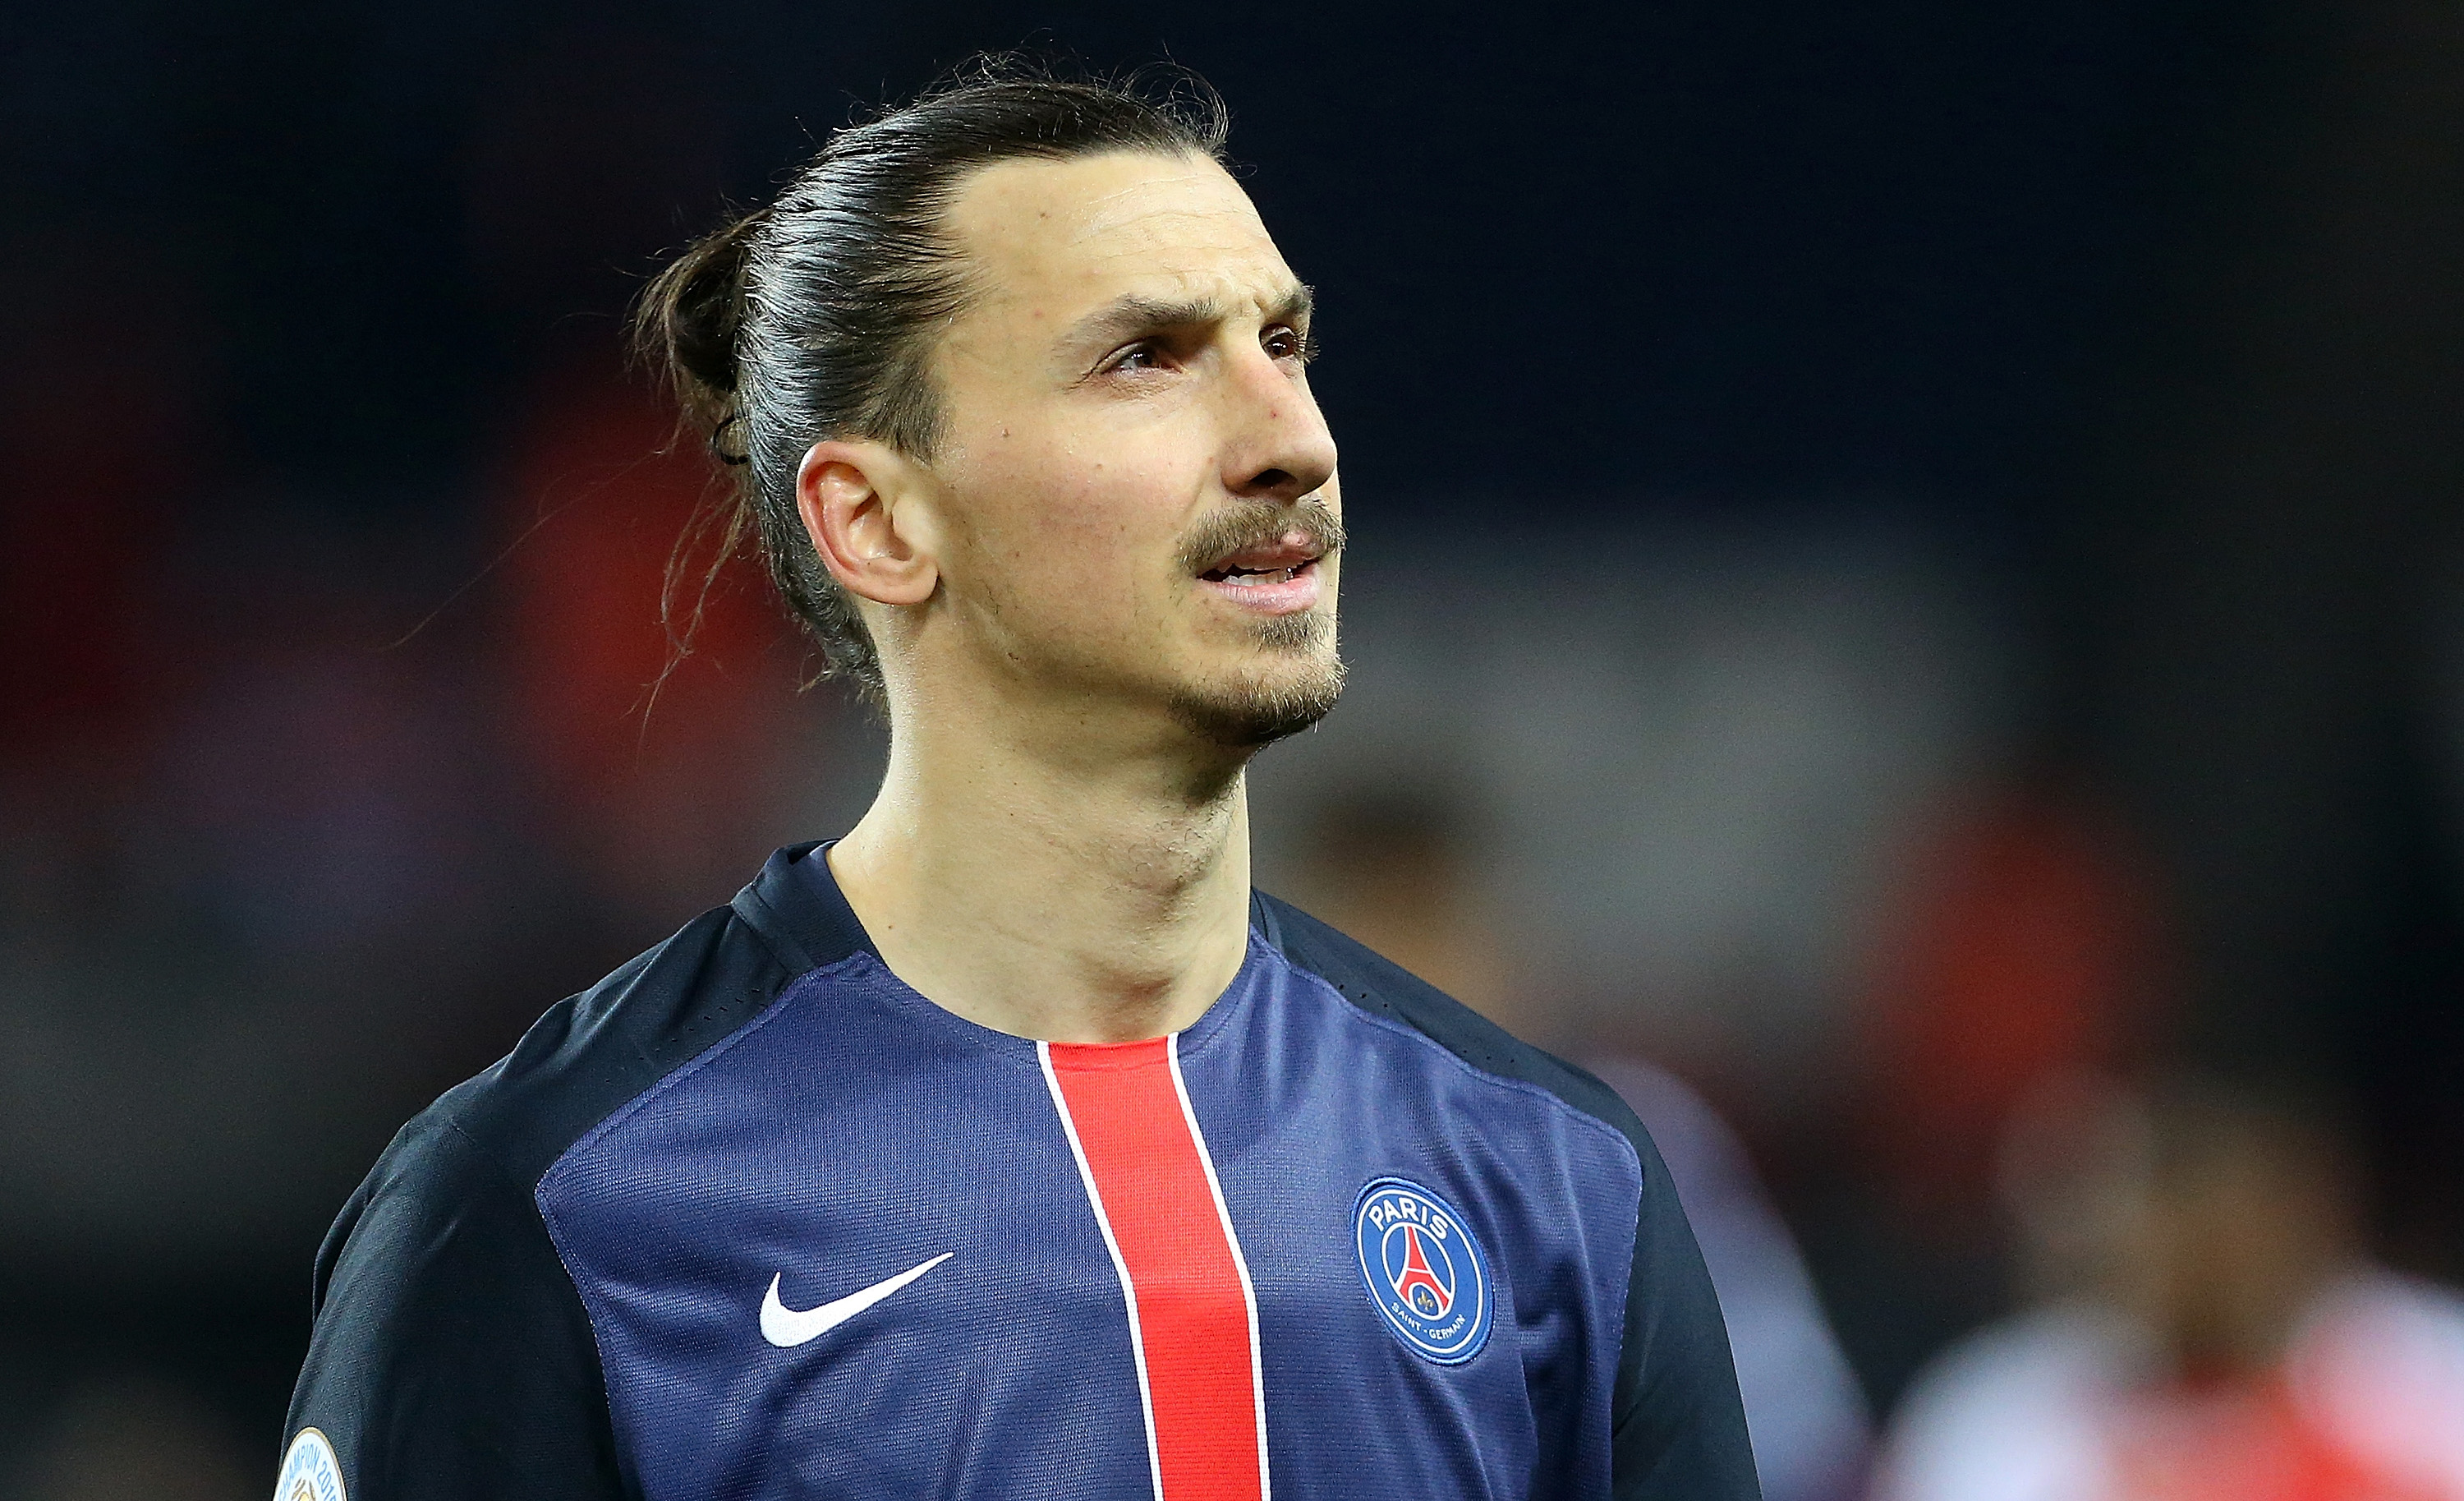 Transfer news: Zlatan Ibrahimovic could pick Arsenal, Liverpool confident of signing Mario Gotze and Jonas Hector, Chelsea must pay up for Romelu Lukaku